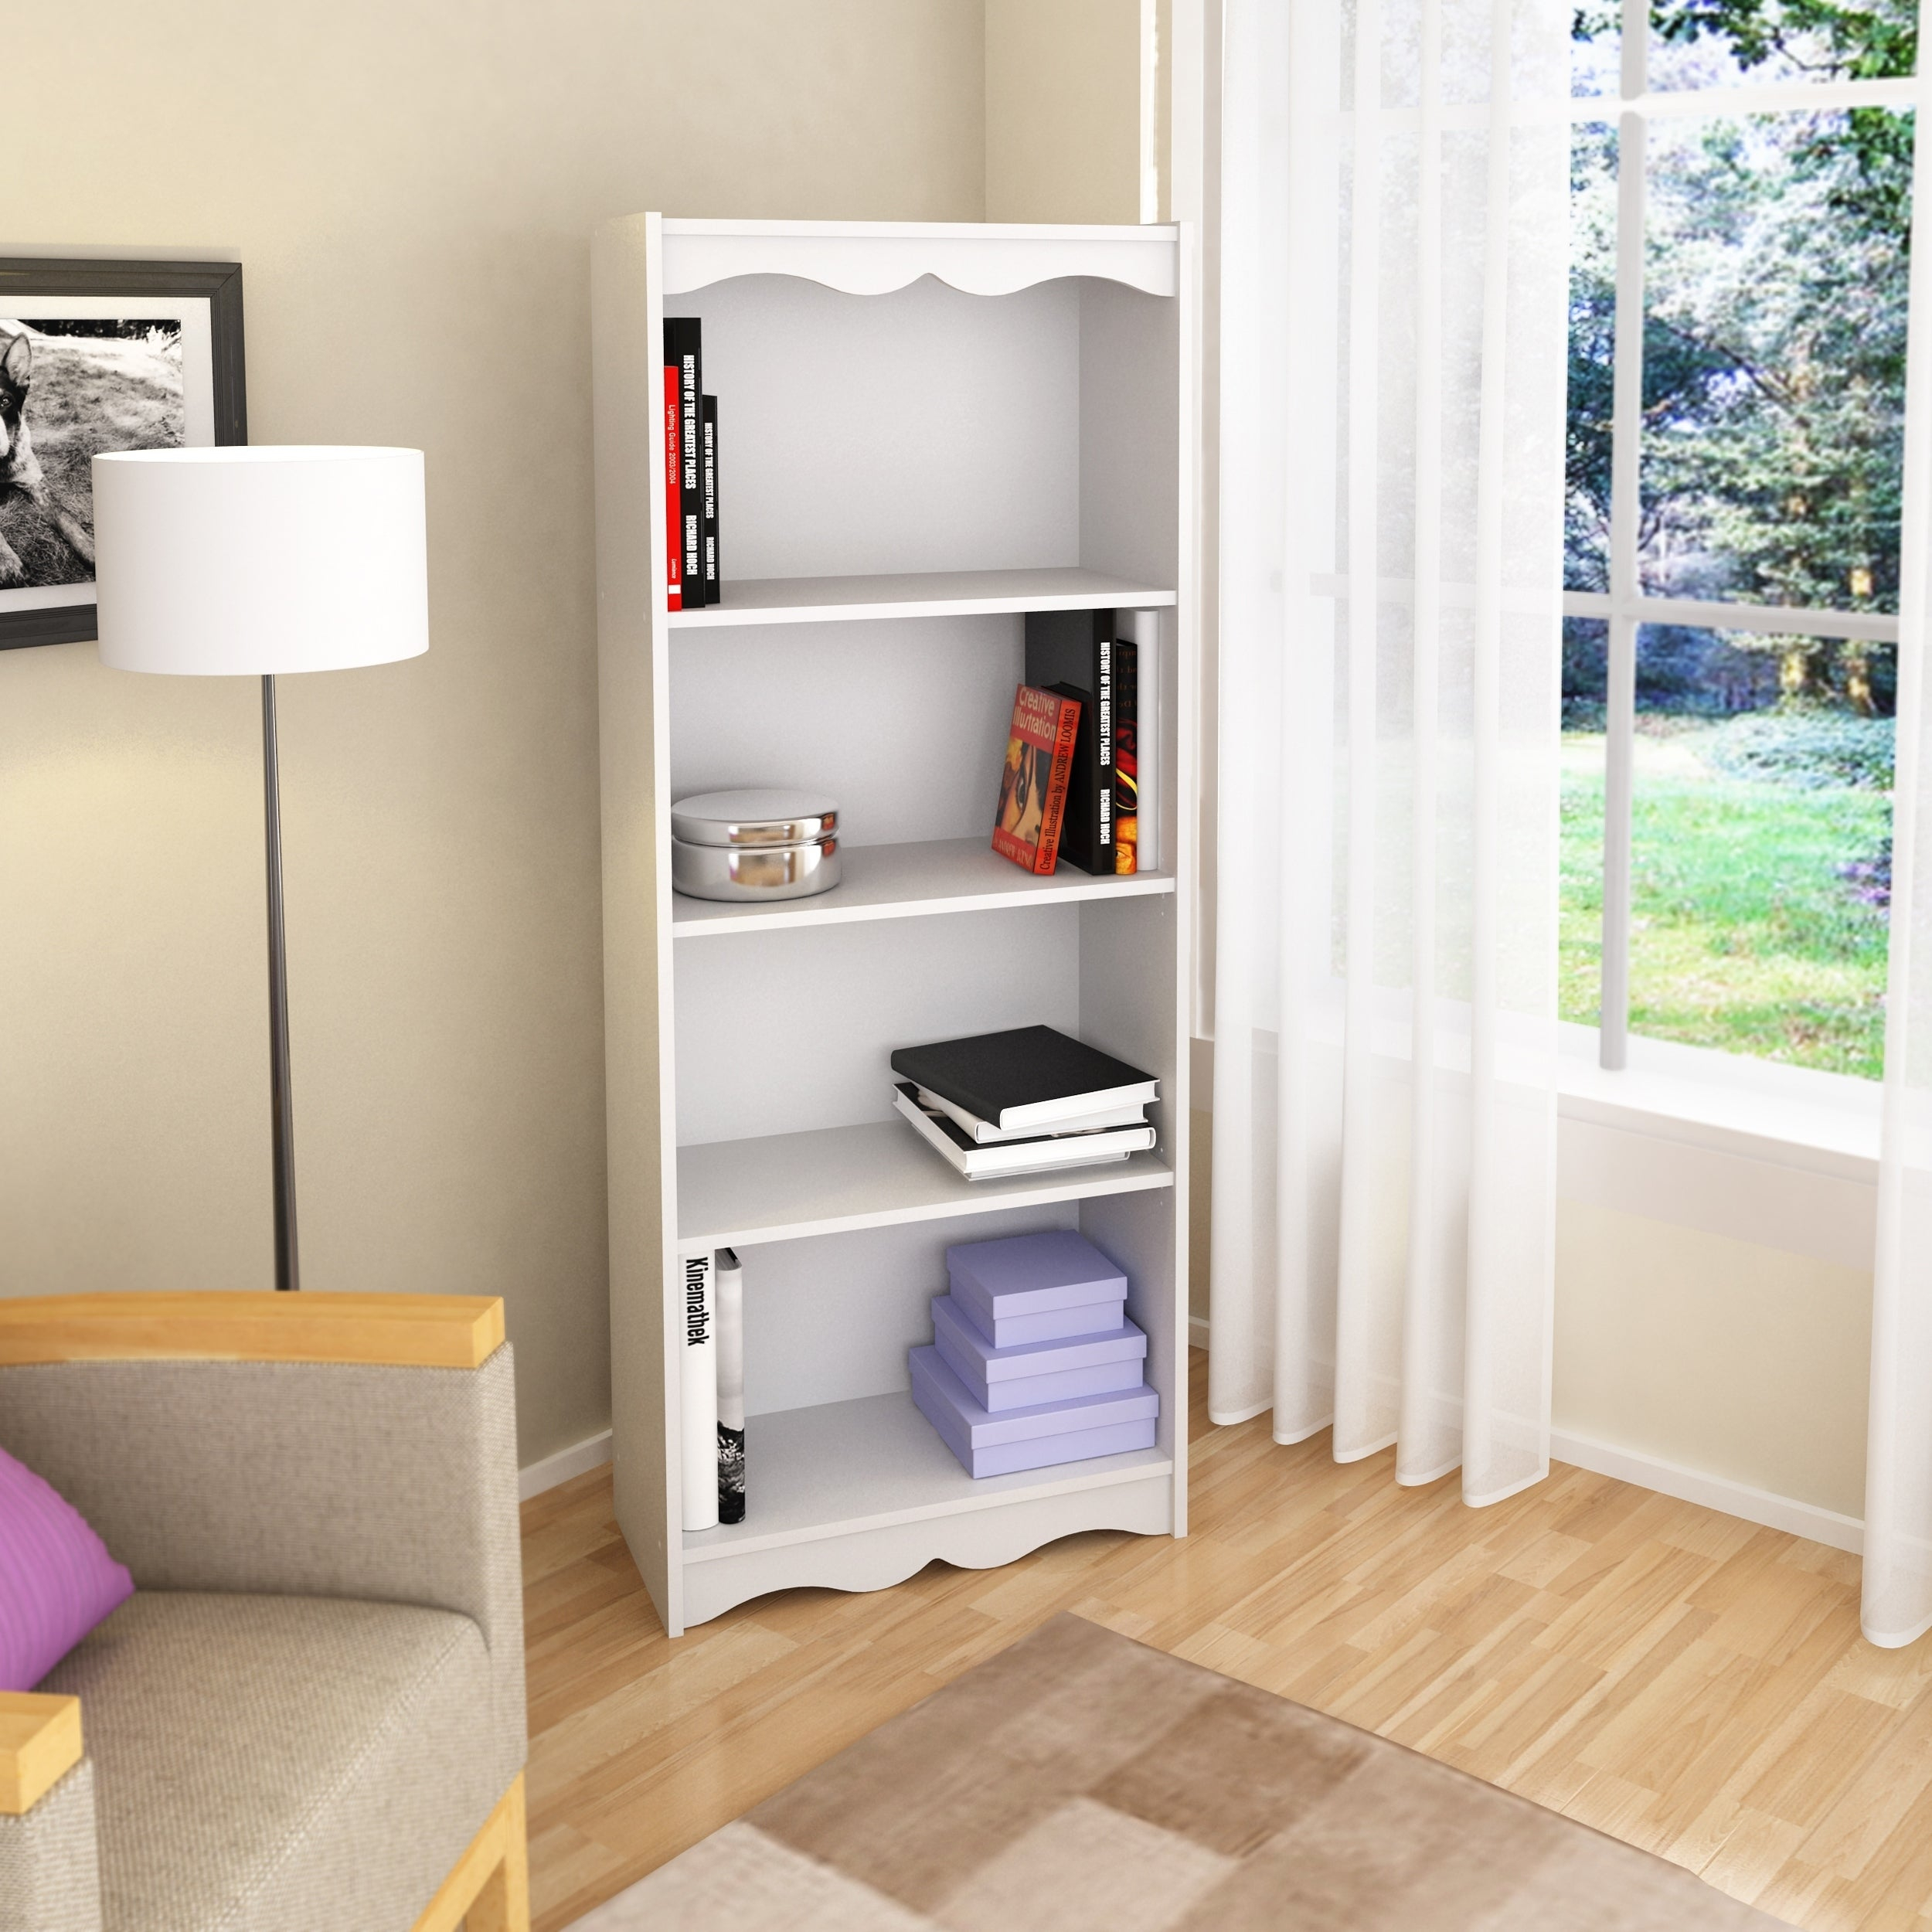 Porch Den Alma Frost White 60 Inch Bookcase pertaining to dimensions 2500 X 2500